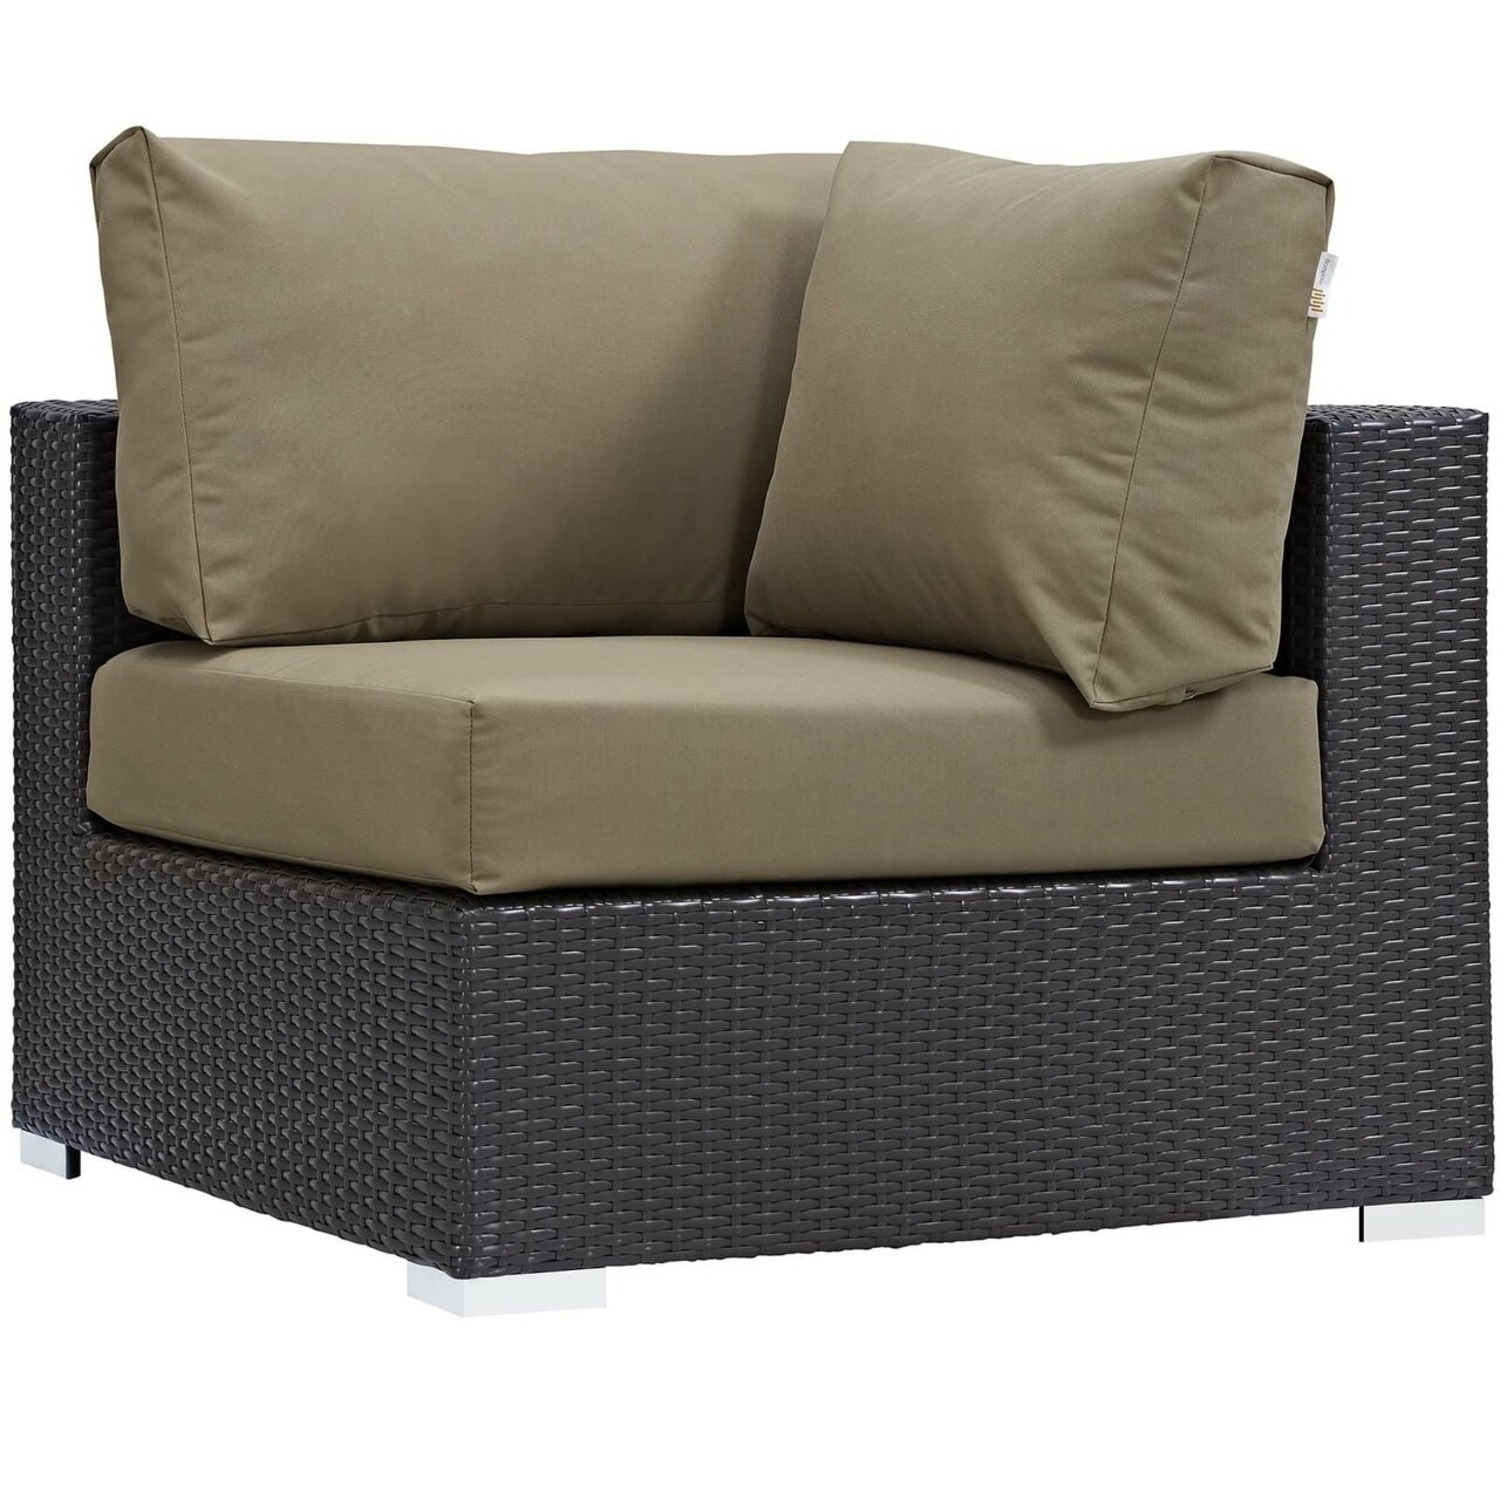 5-Piece Outdoor Sectional In Mocha Fabric Finish - image-2